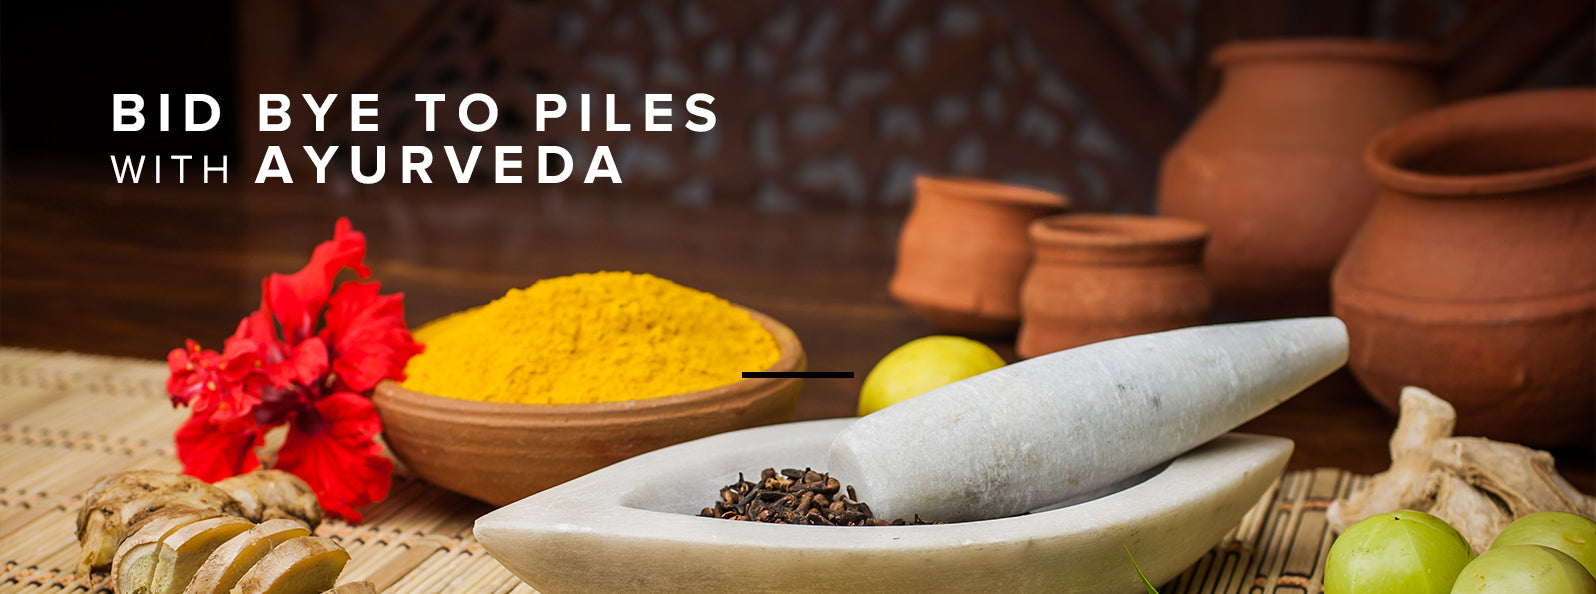 Get Relief from Piles: A Guide on Ayurvedic Approach to Piles